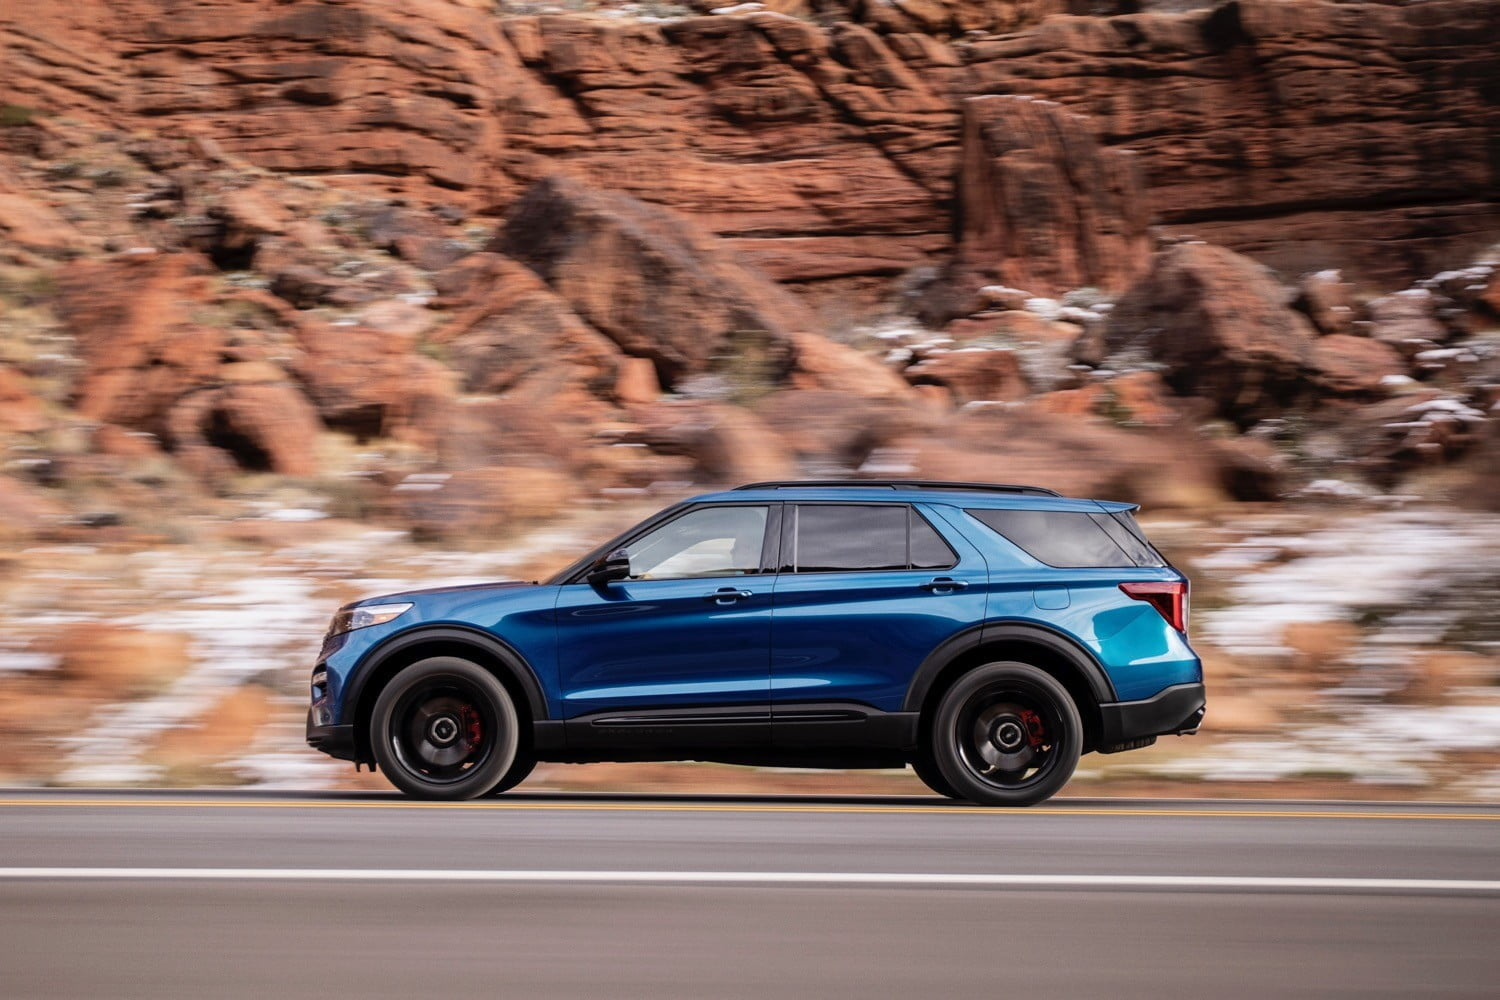 The Engineering Easter Eggs In The New 2020 Ford Explorer